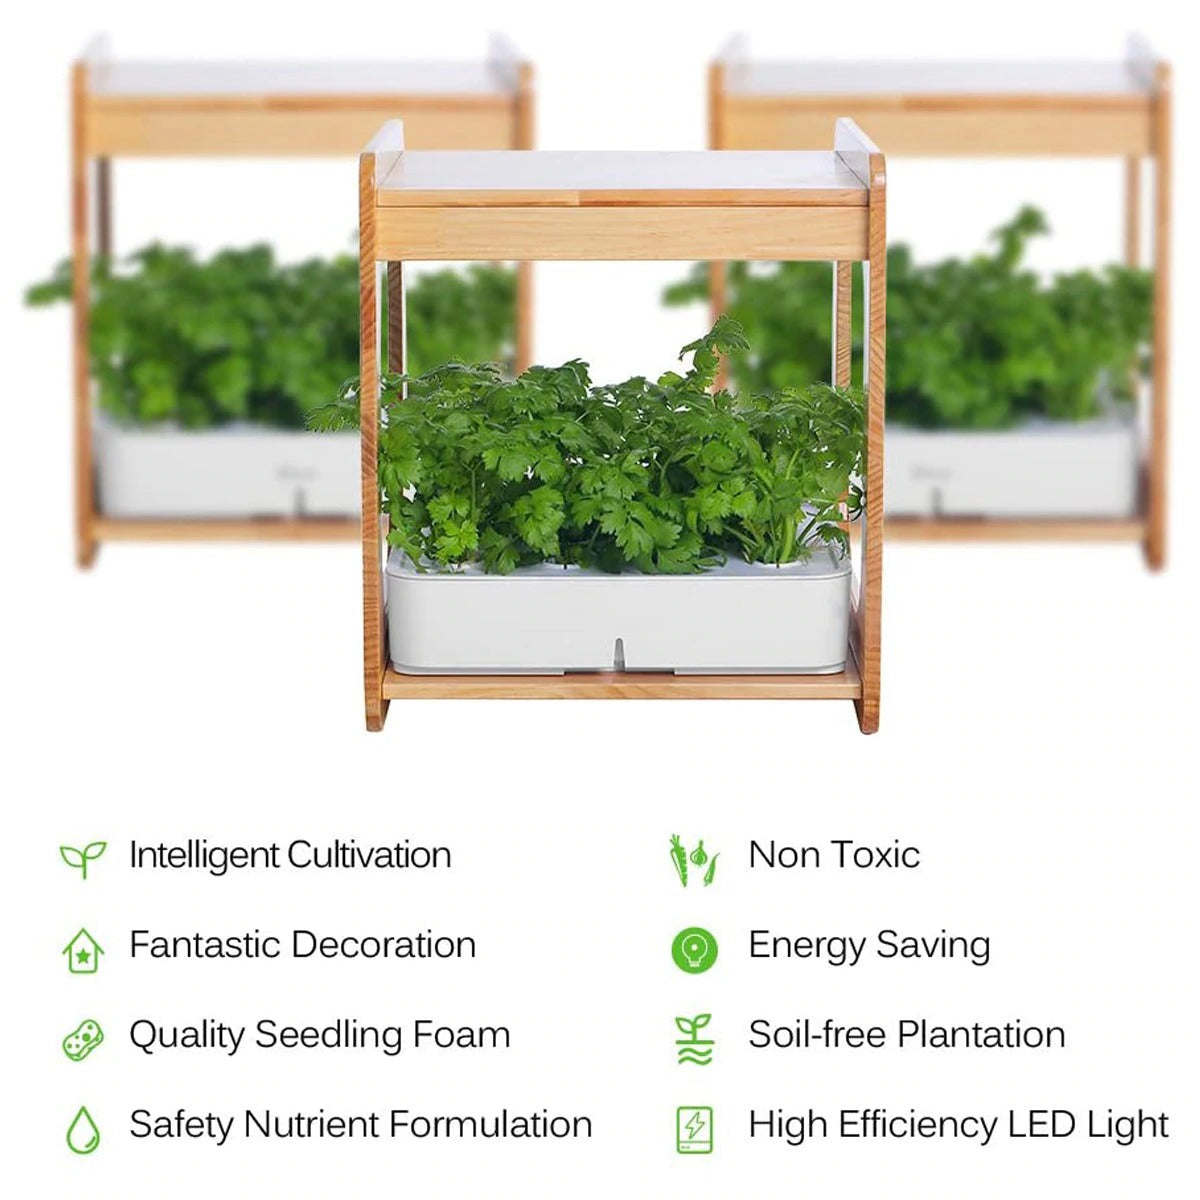 Complete Indoor Hydroponic Grow System